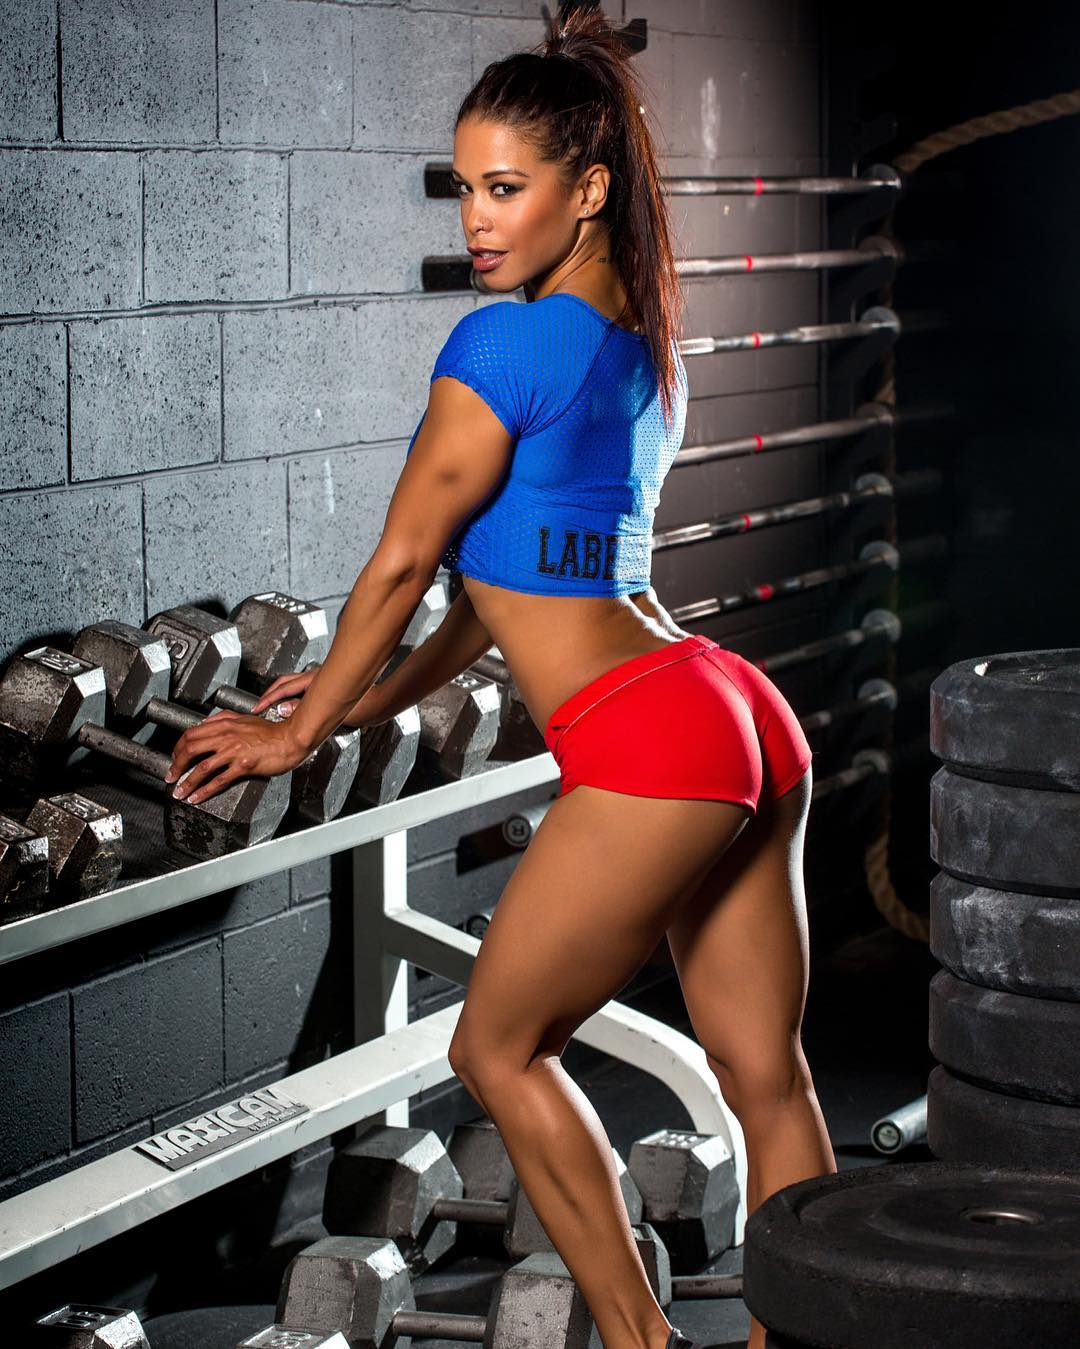 india paulino Middle Back Workout Routine